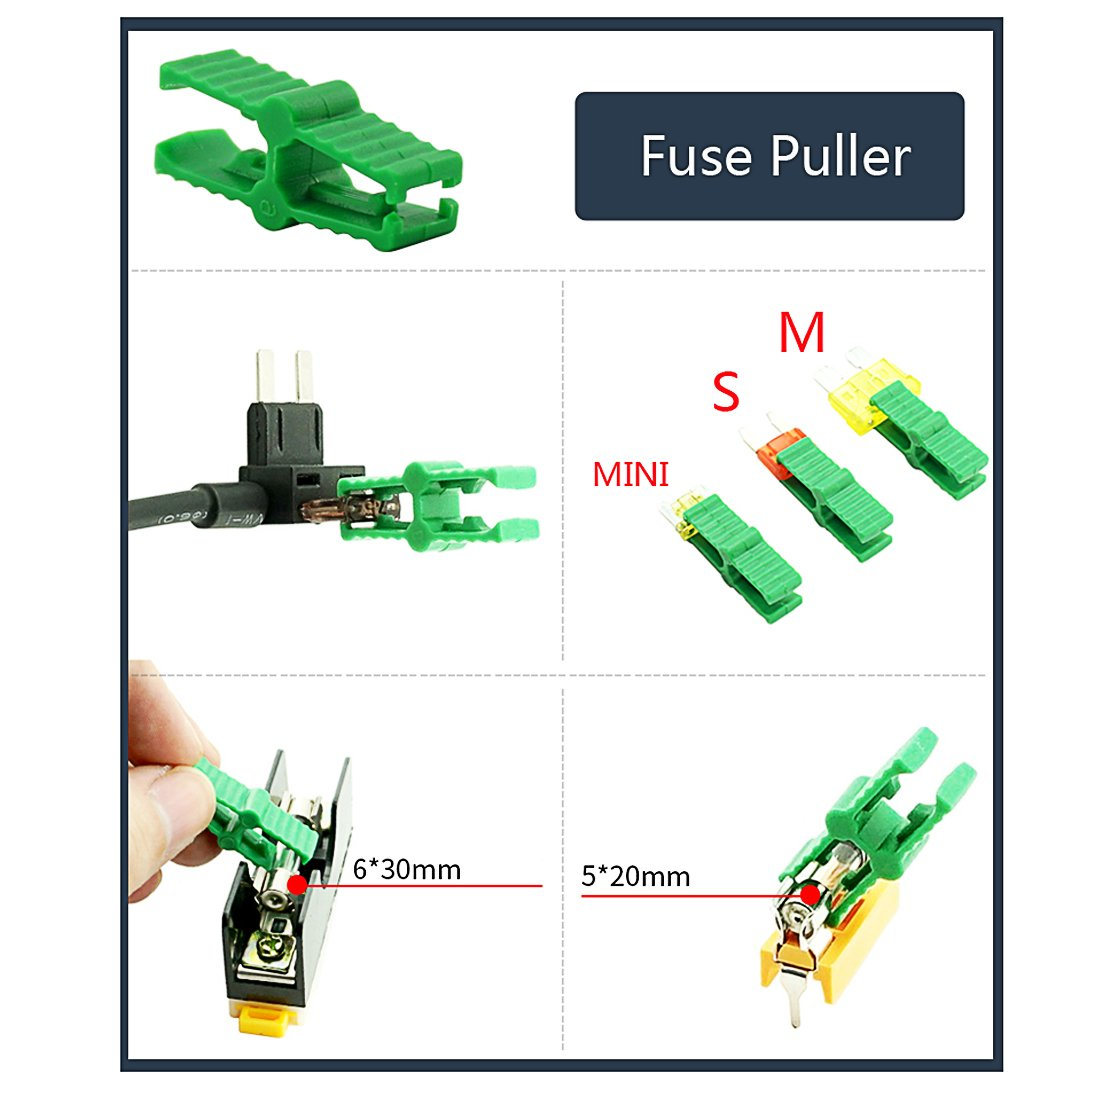 Blade Fuse Assortment M Auto Car Truck Standard Blade Fuse Kit 2 3 5 7.5 10 15 20 25 30 35AMP Cars Boats Trucks SUV/Automotive Fuses w Fuse Puller and AUTO Tester and Storage Case